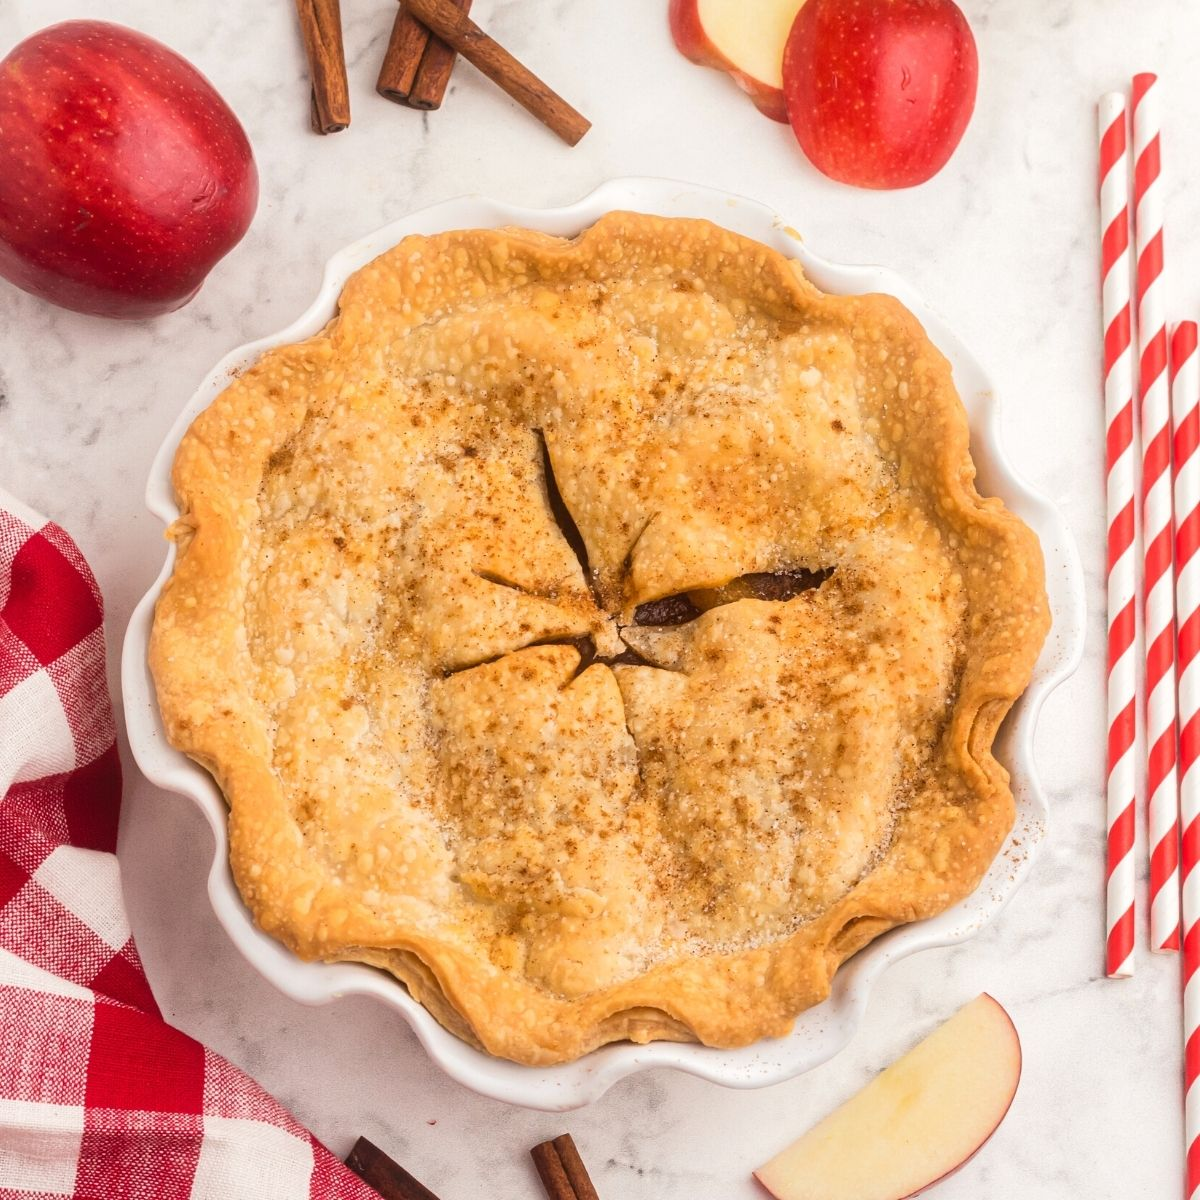 Golden baked apple pie, with red apples and red and white straws on the table.